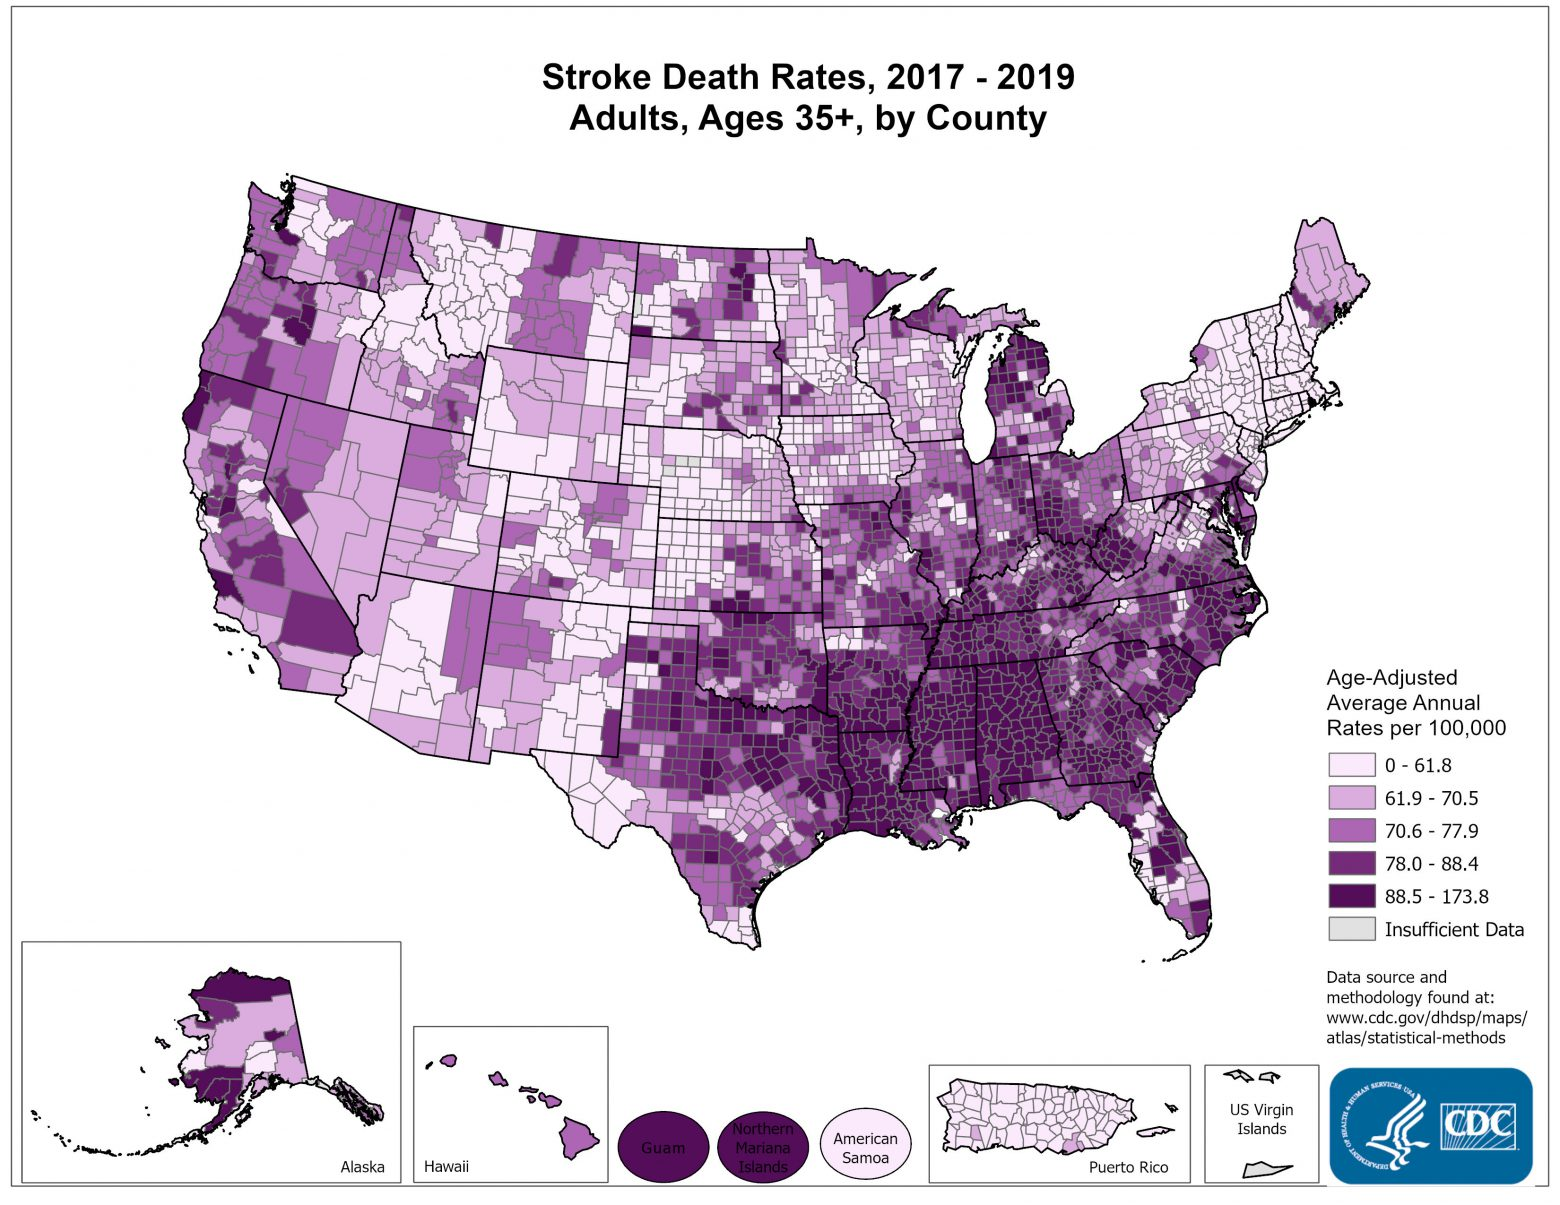 Stroke Death Rates for 2011 through 2013 for Adults Aged 35 Years and Older by County. The map shows that concentrations of counties with the highest stroke death rates - meaning the top quintile - are located primarily in the Southeast, with heavy concentrations of high-rate counties in Georgia, Alabama, Mississippi, and Arkansas. Pockets of high-rate counties also are found in Alaska, Tennessee, Oklahoma, parts of Texas, and along the coastal plains of North Carolina and South Carolina.